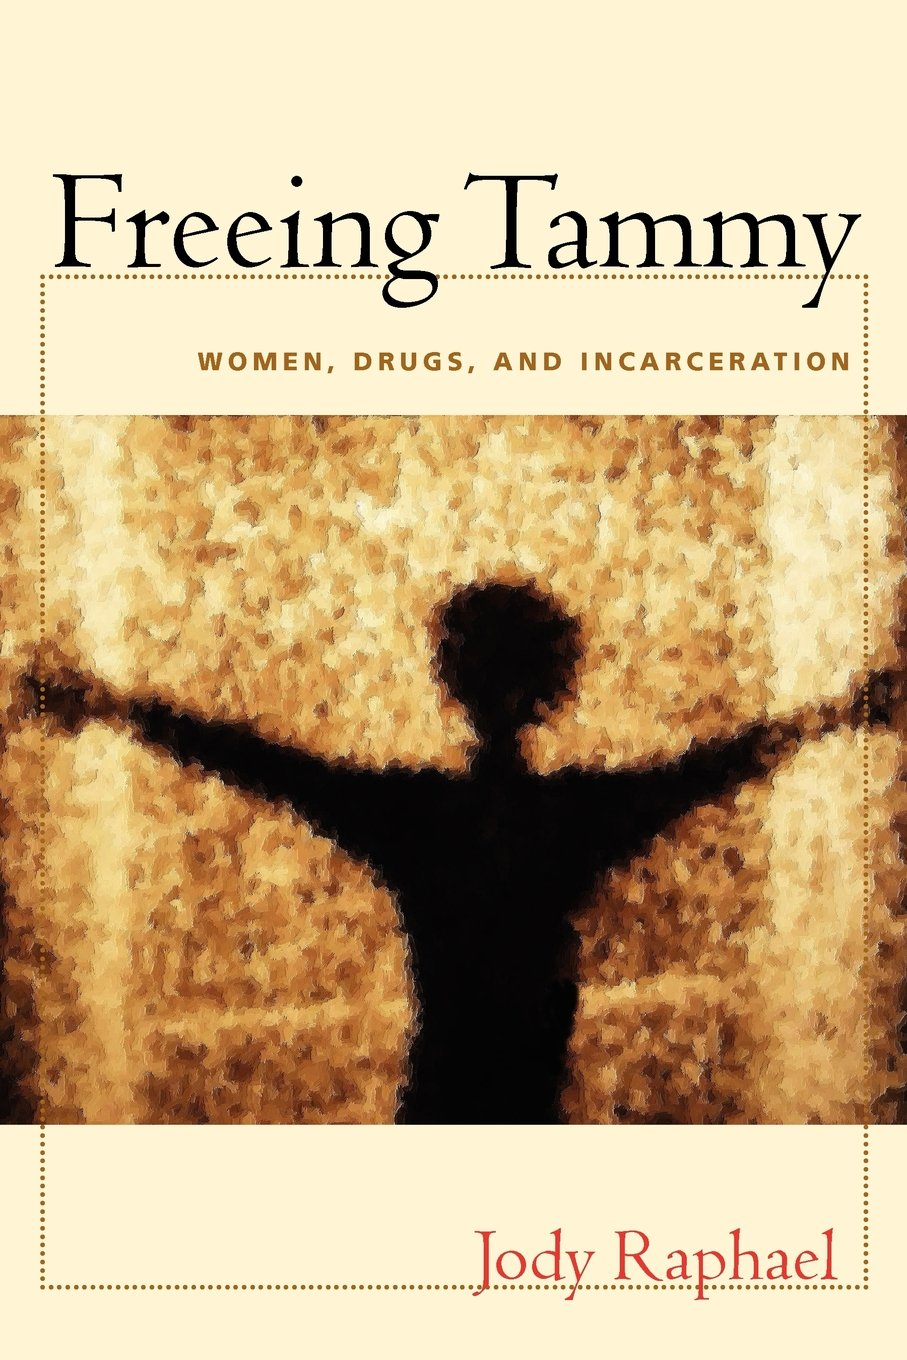 Freeing Tammy: Women, Drugs, and Incarceration (Northeastern Series on Gender, Crime, and Law) pdf epub